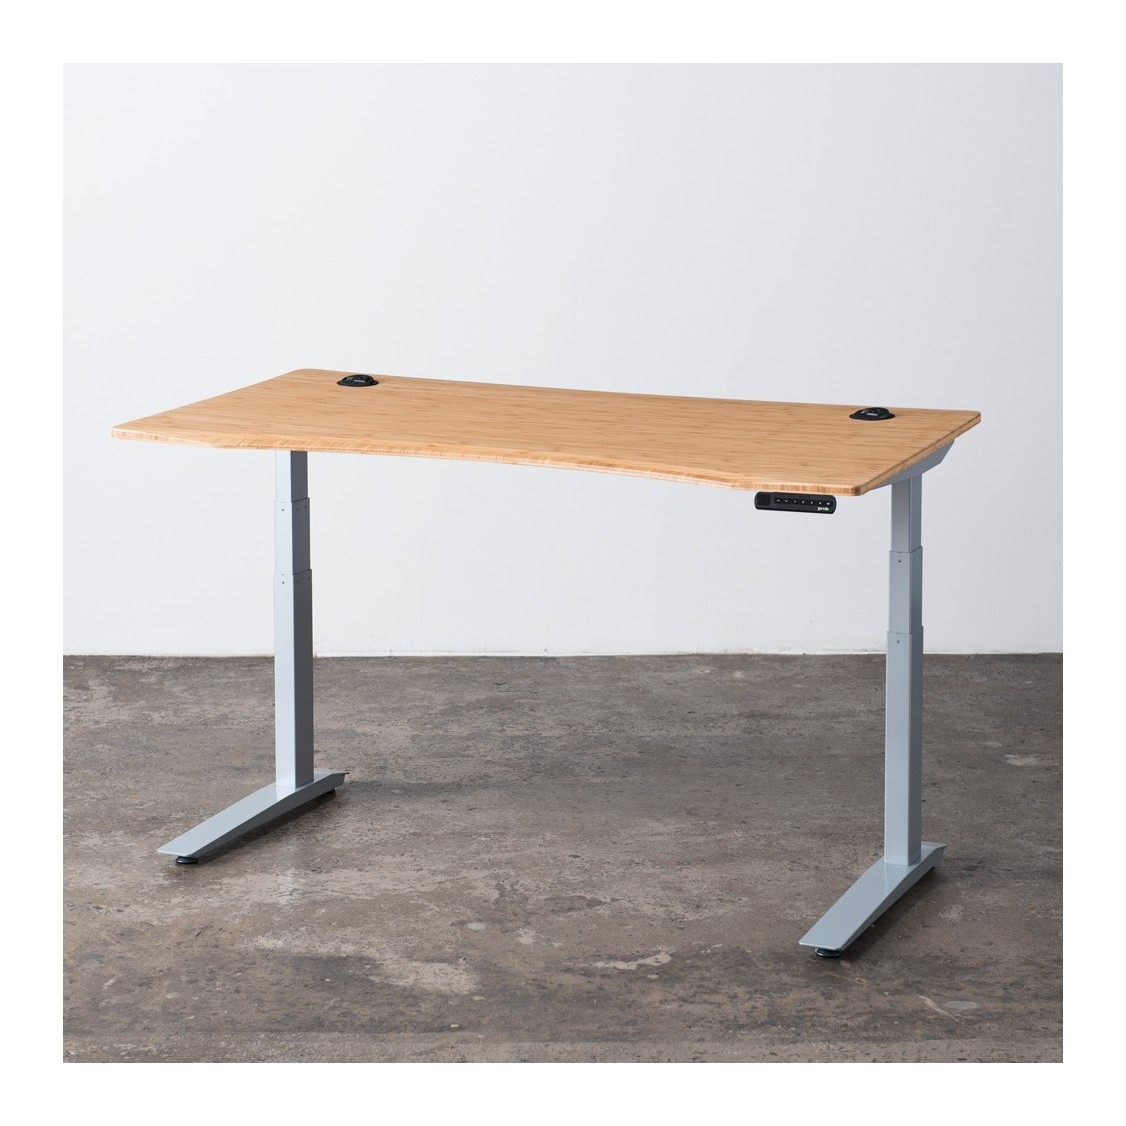 jarvis made a desks the requires happy start re know to you adjustable ll bamboo desk standing me like treehugger no if are or fertilizers pesticides review be tabletop from that